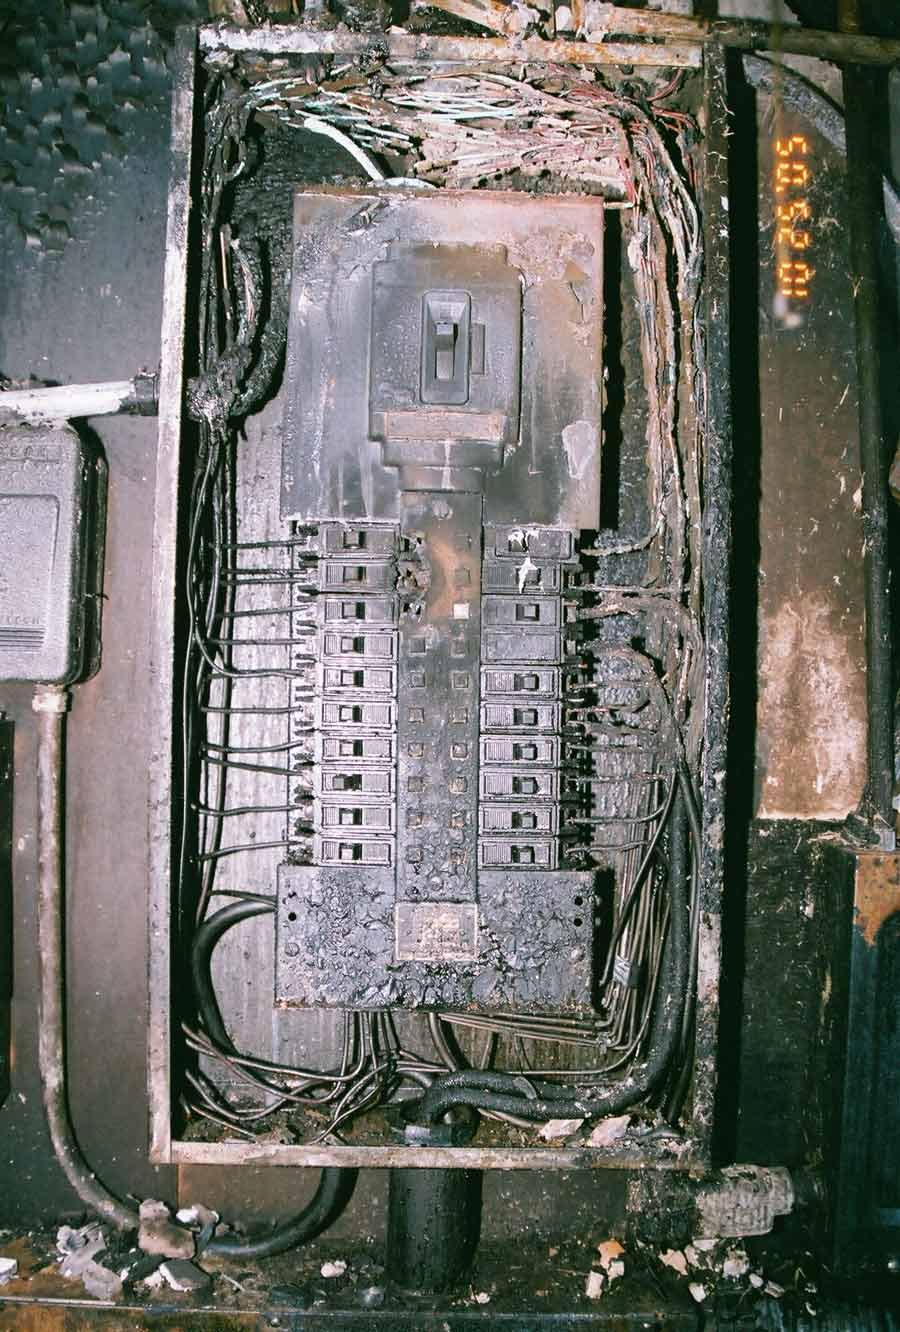 Electrical Distribution Panels Circuit Breaker Fires 200 Box Wiring Diagram 30 Old Fuse Single Pole Severe Arcing In Panel